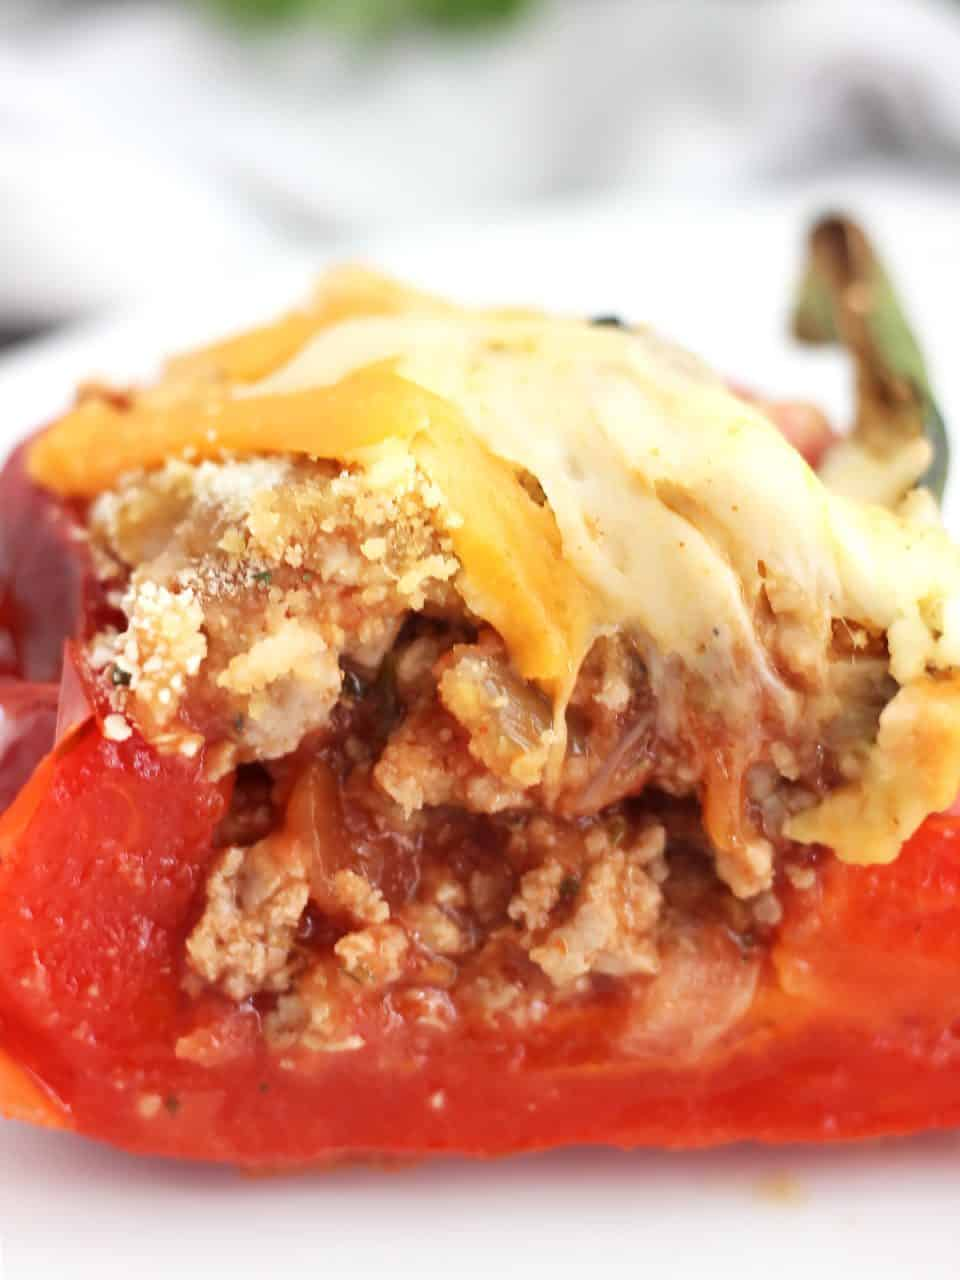 Close up of a stuffed pepper cut in half to show the filling.